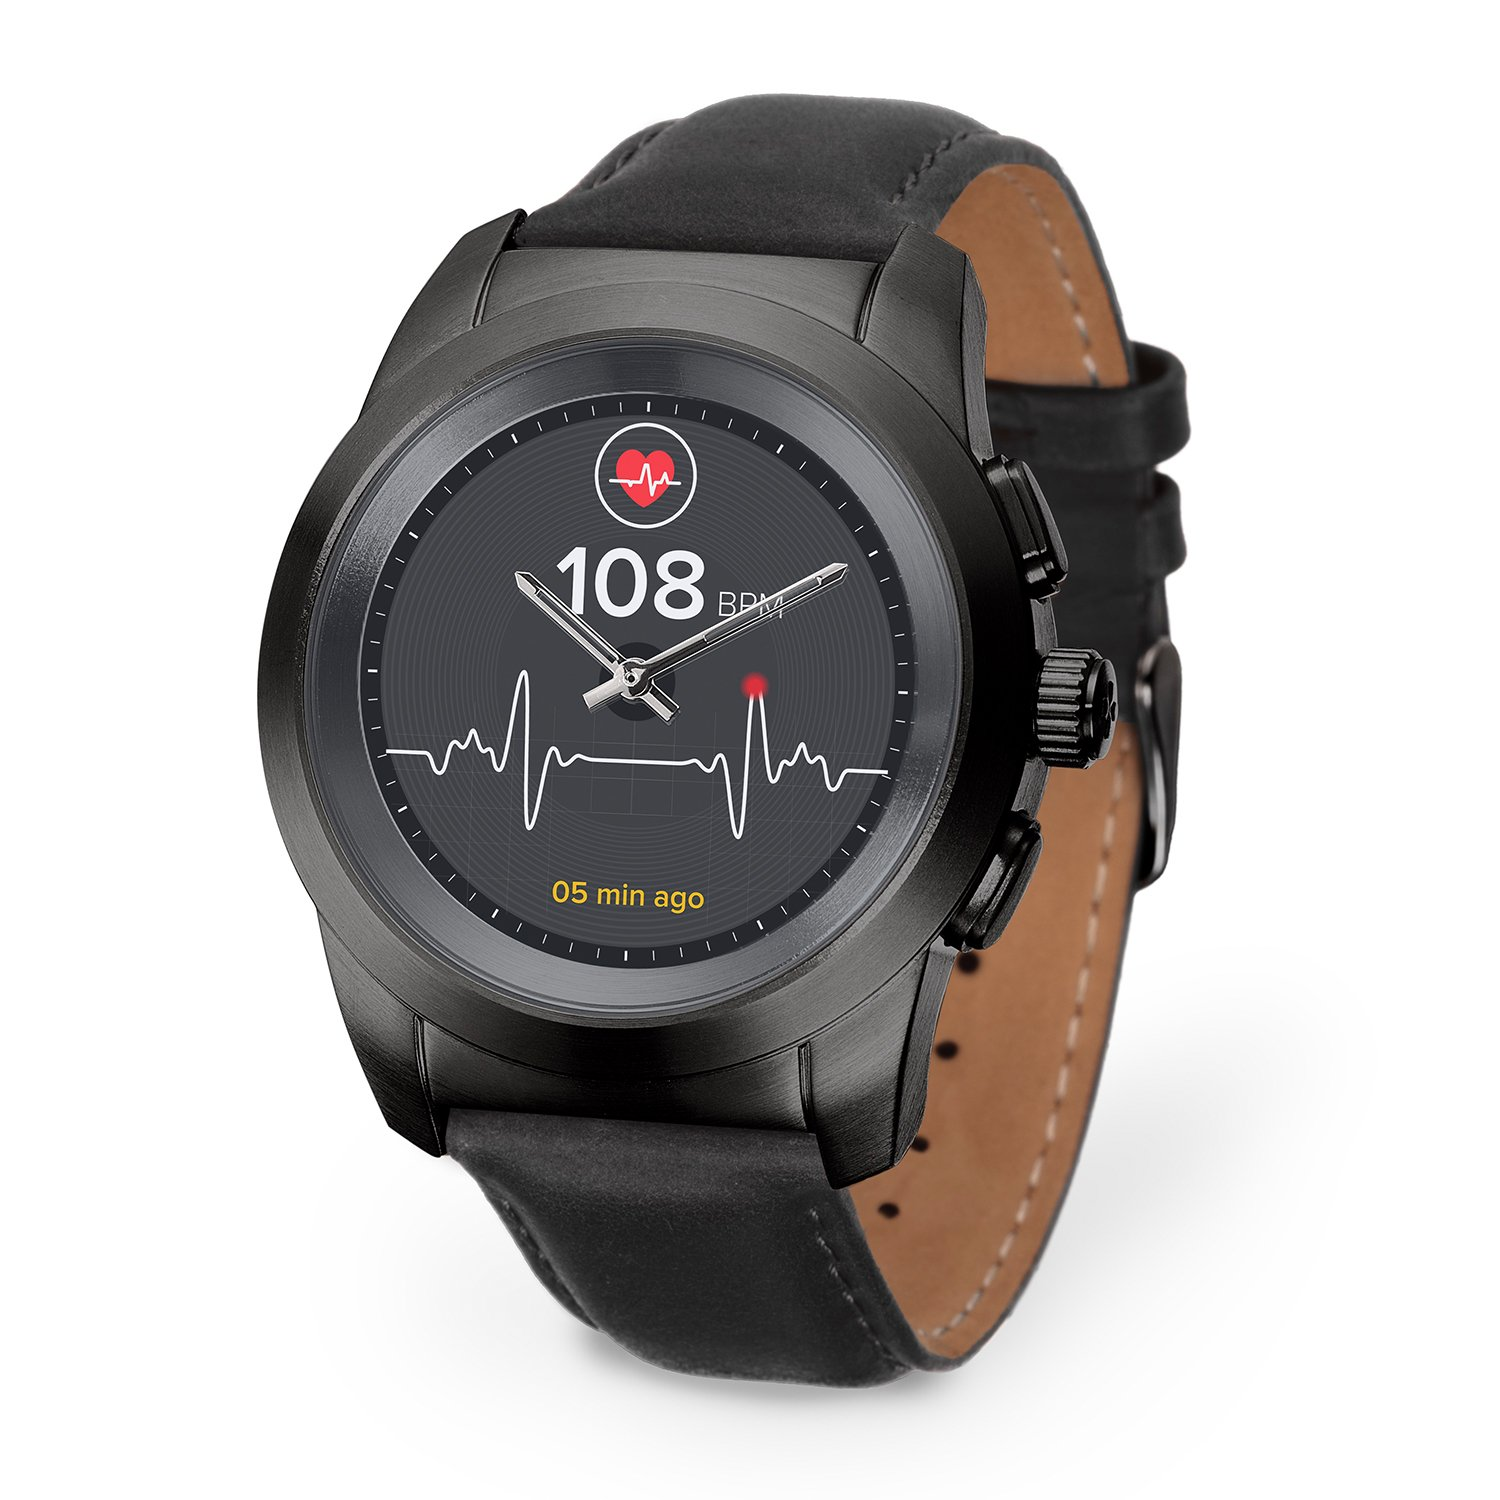 MyKronoz ZeTime Premium Hybrid Smartwatch 44mm with mechanical hands over a color touch screen – Brushed Black / Black Flat Leather